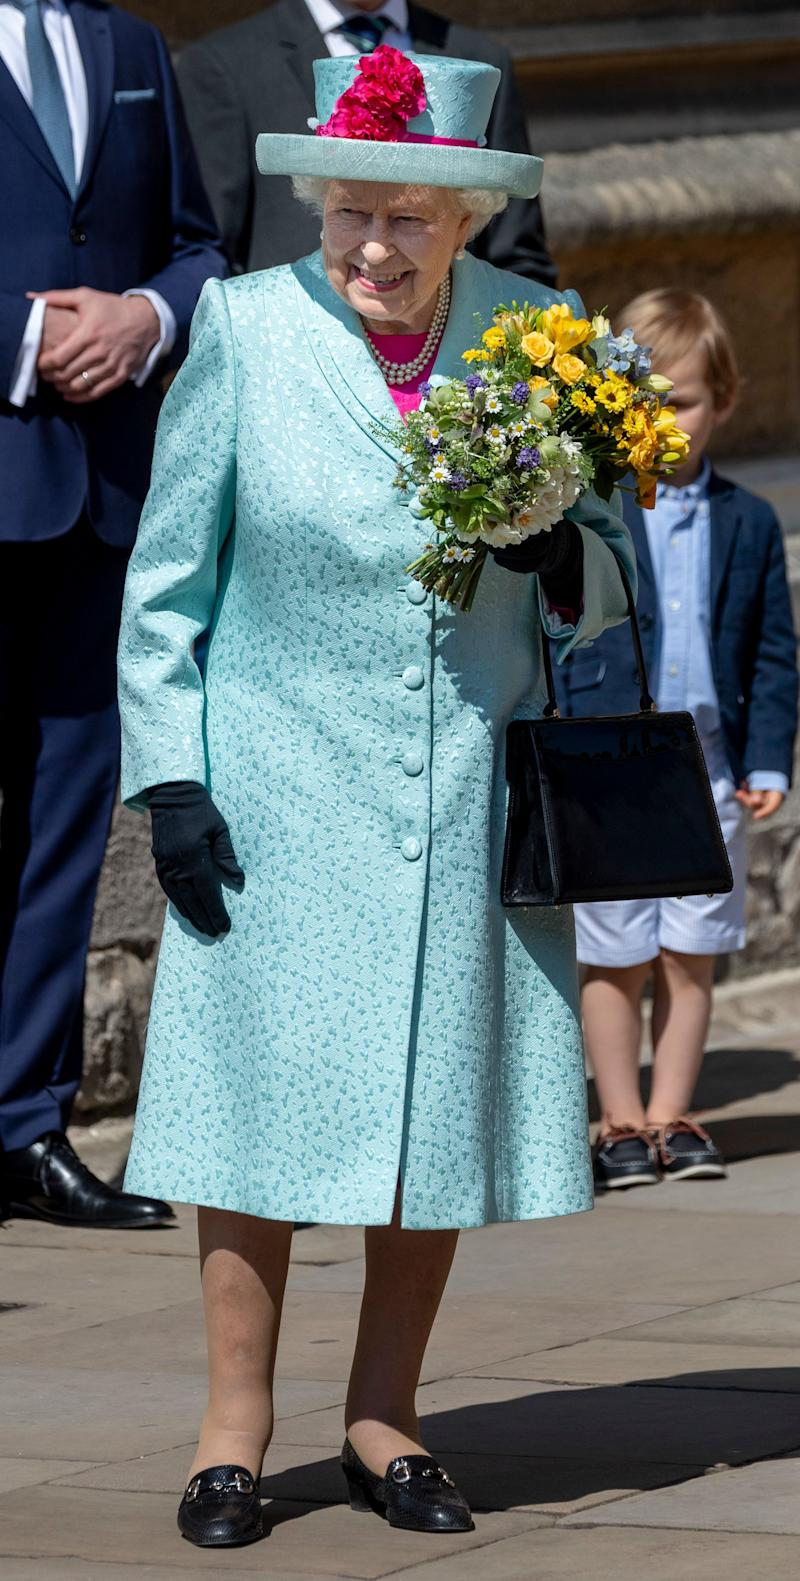 The queen celebrated her 93rd birthday on Sunday. (Photo: Mark Cuthbert via Getty Images)